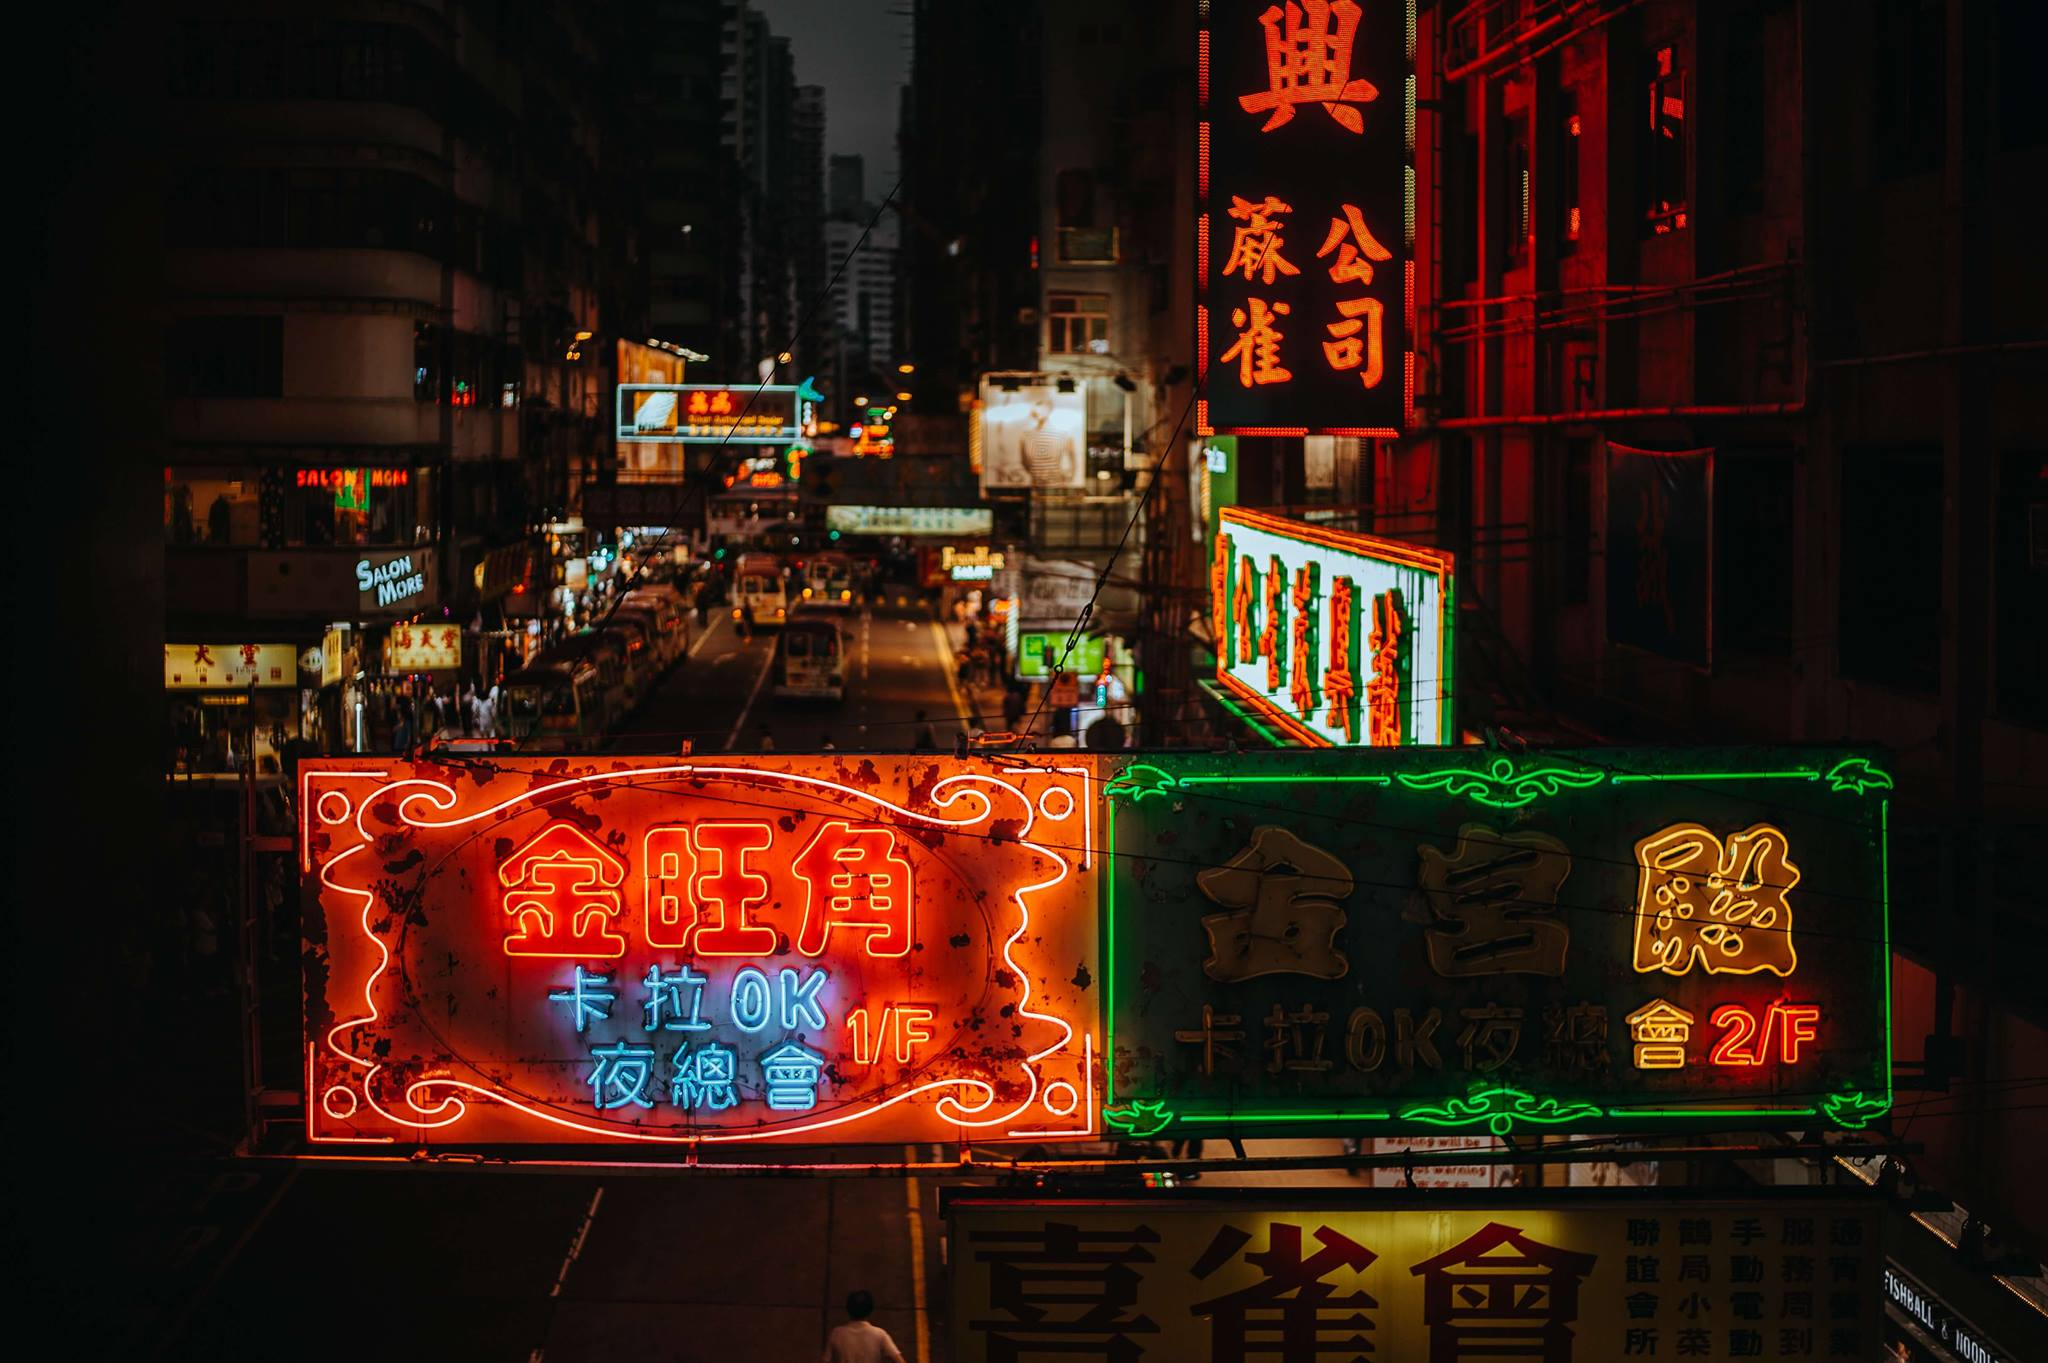 Catch the neon signs before political correctness eliminates them from Hong Kong once and for all [photo credit: Annie Spratt]